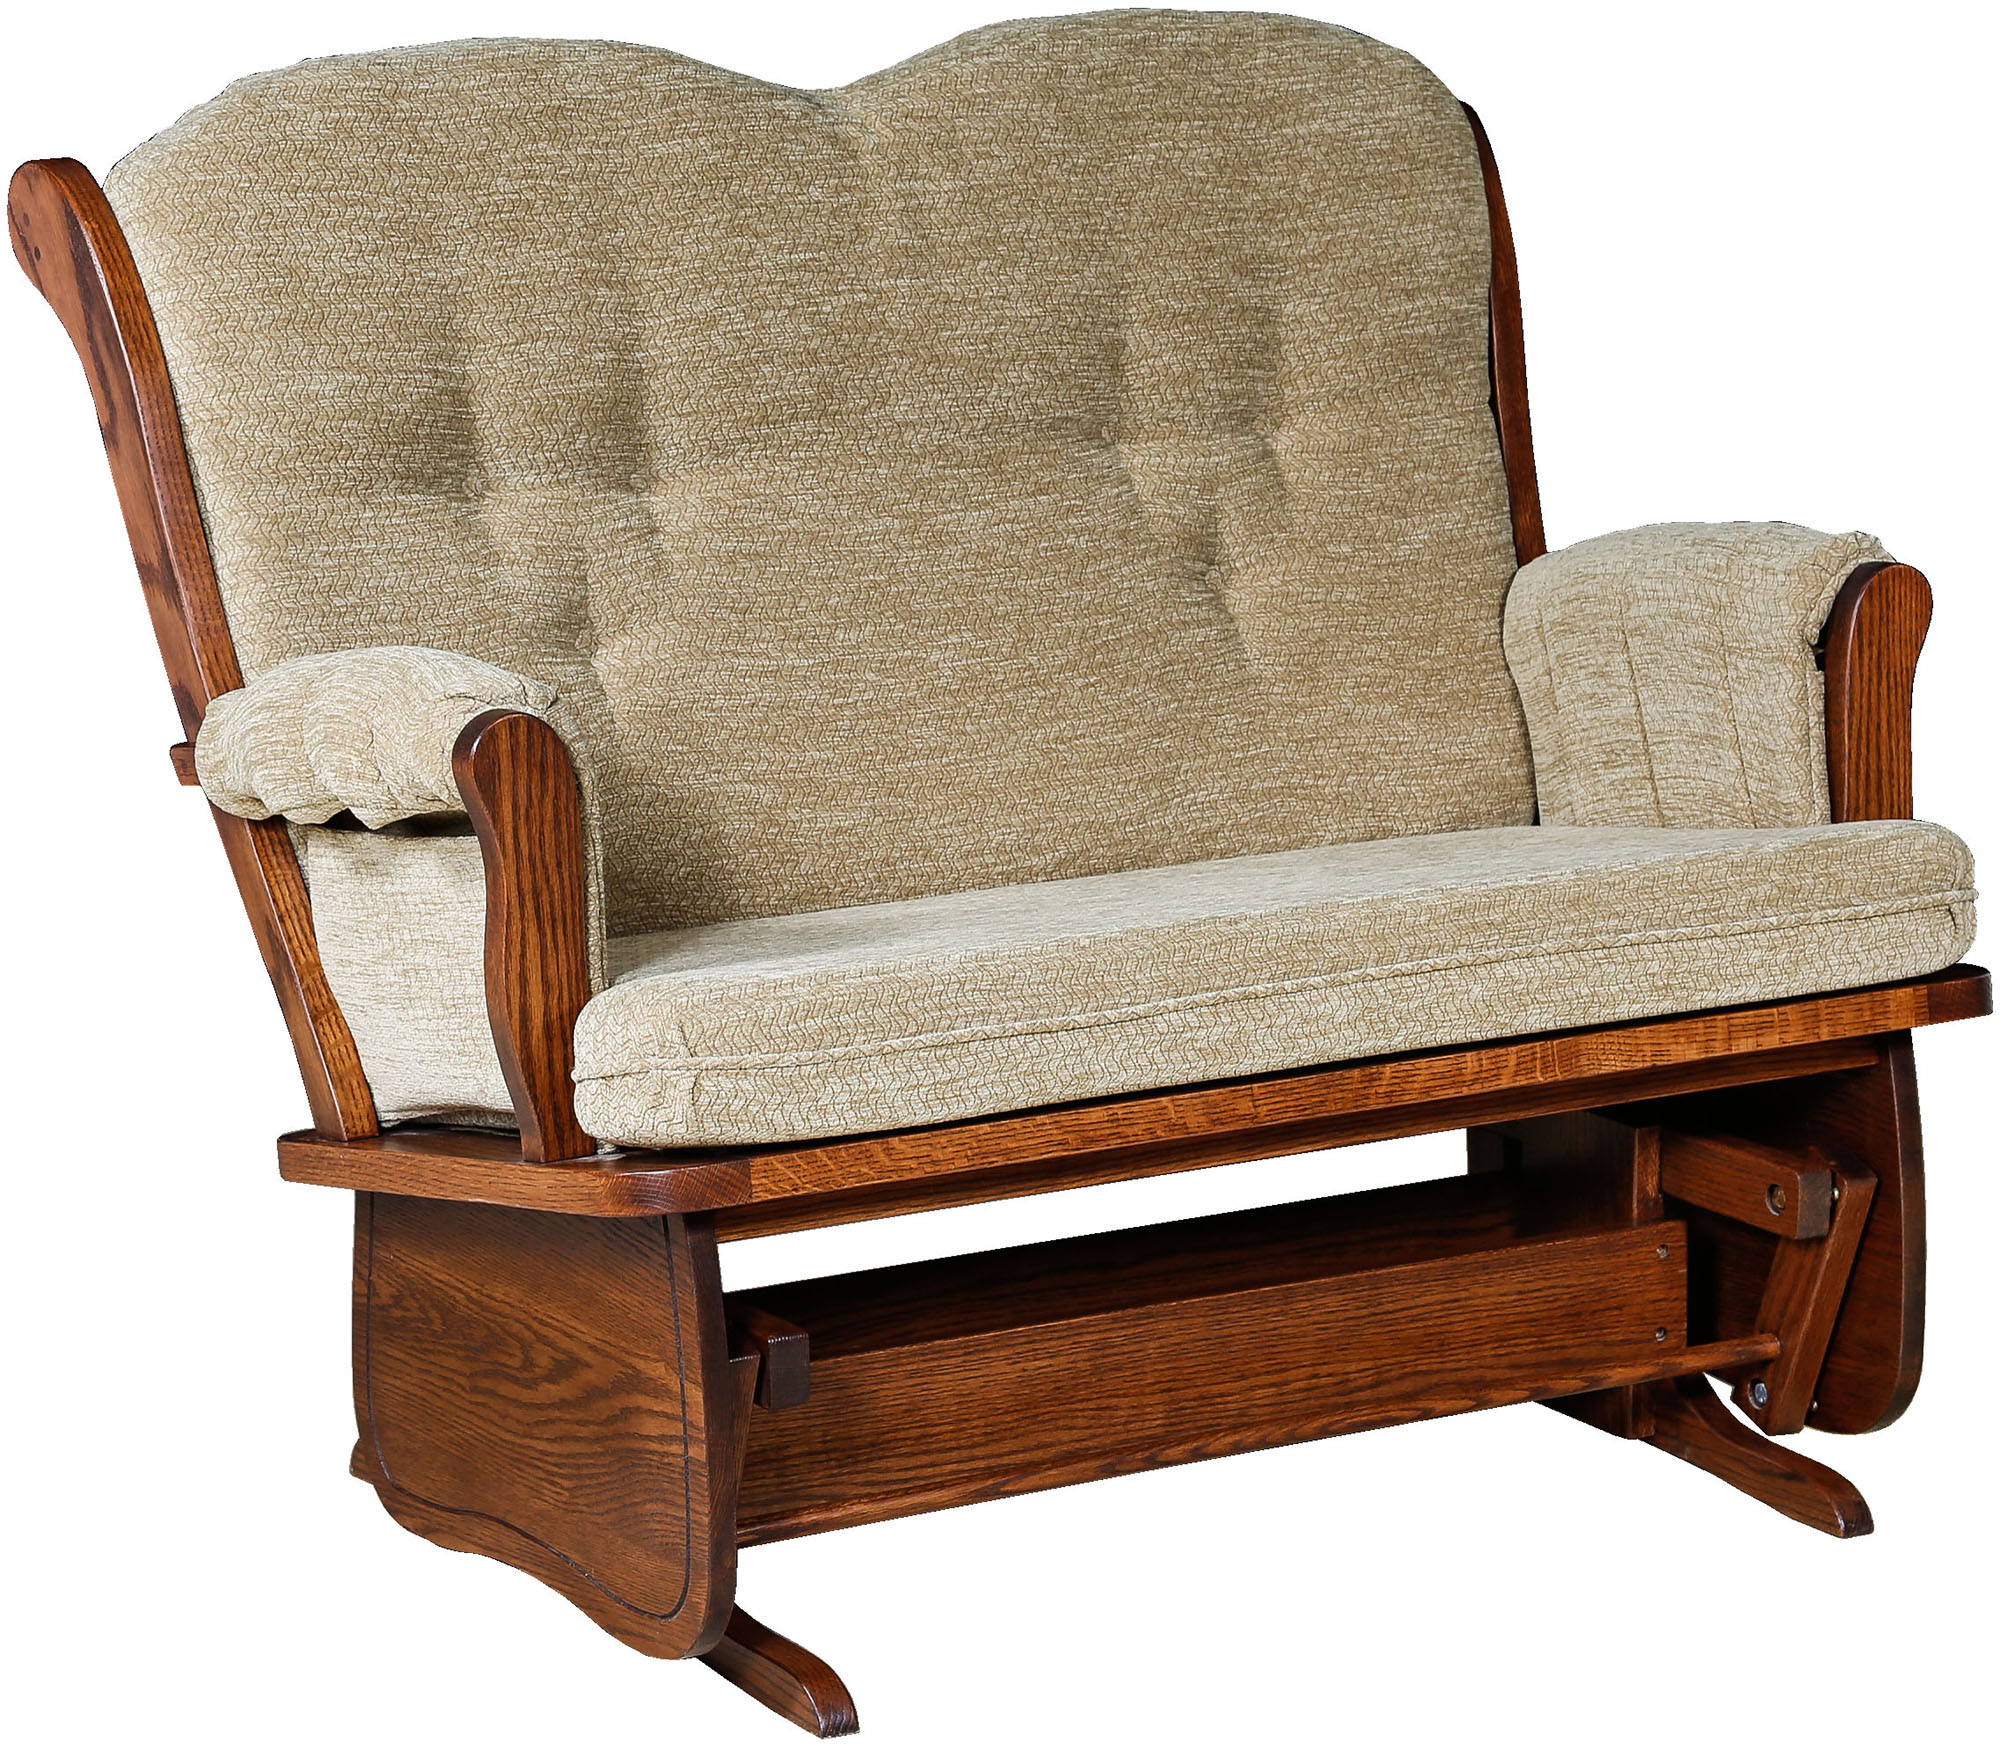 childcare glider rocking chair ottoman walnut hanging bubble swanback loveseat solid wood